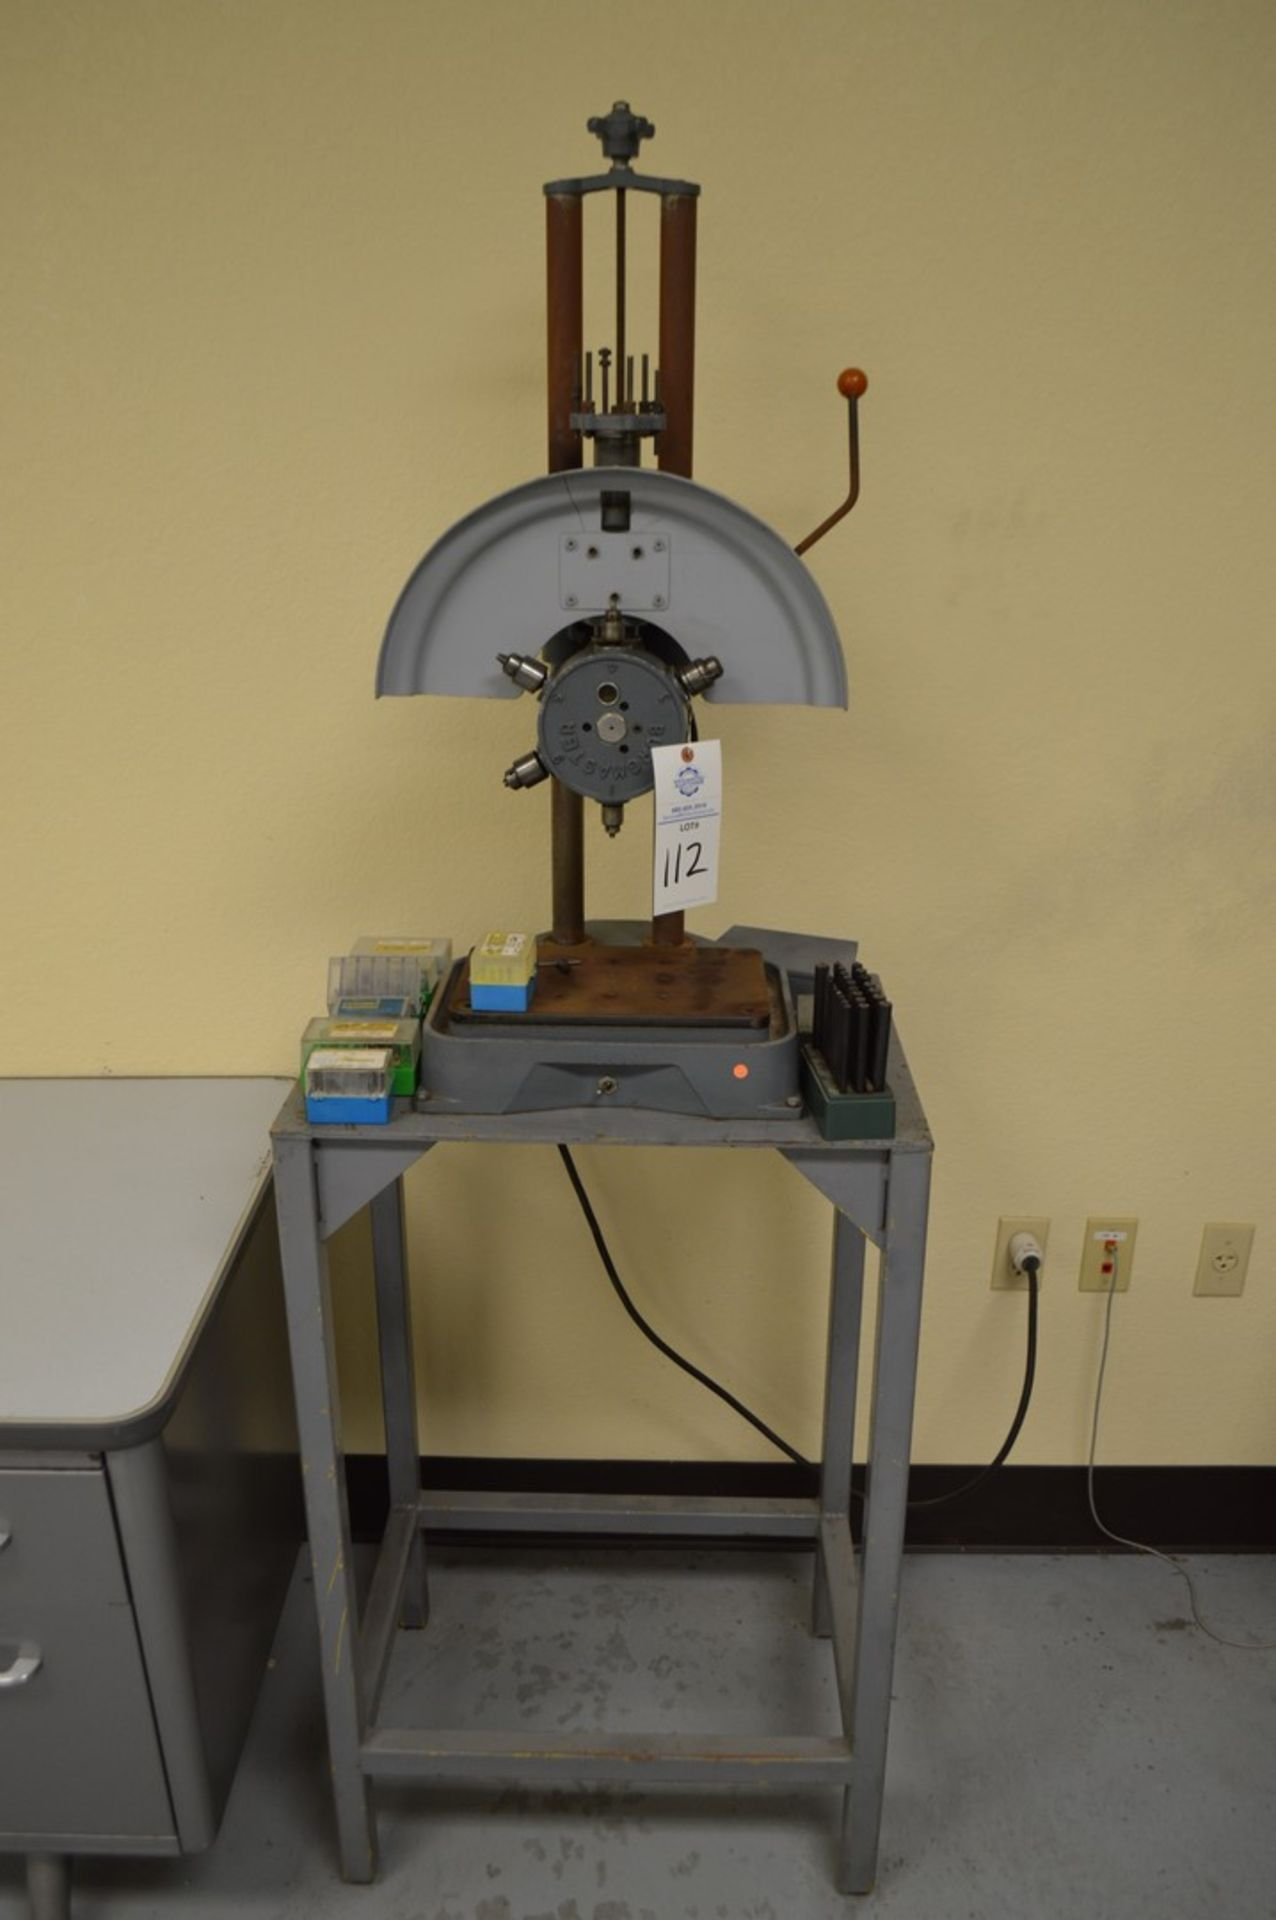 Burgmaster, 6 position, several taps, gauges and drill index included